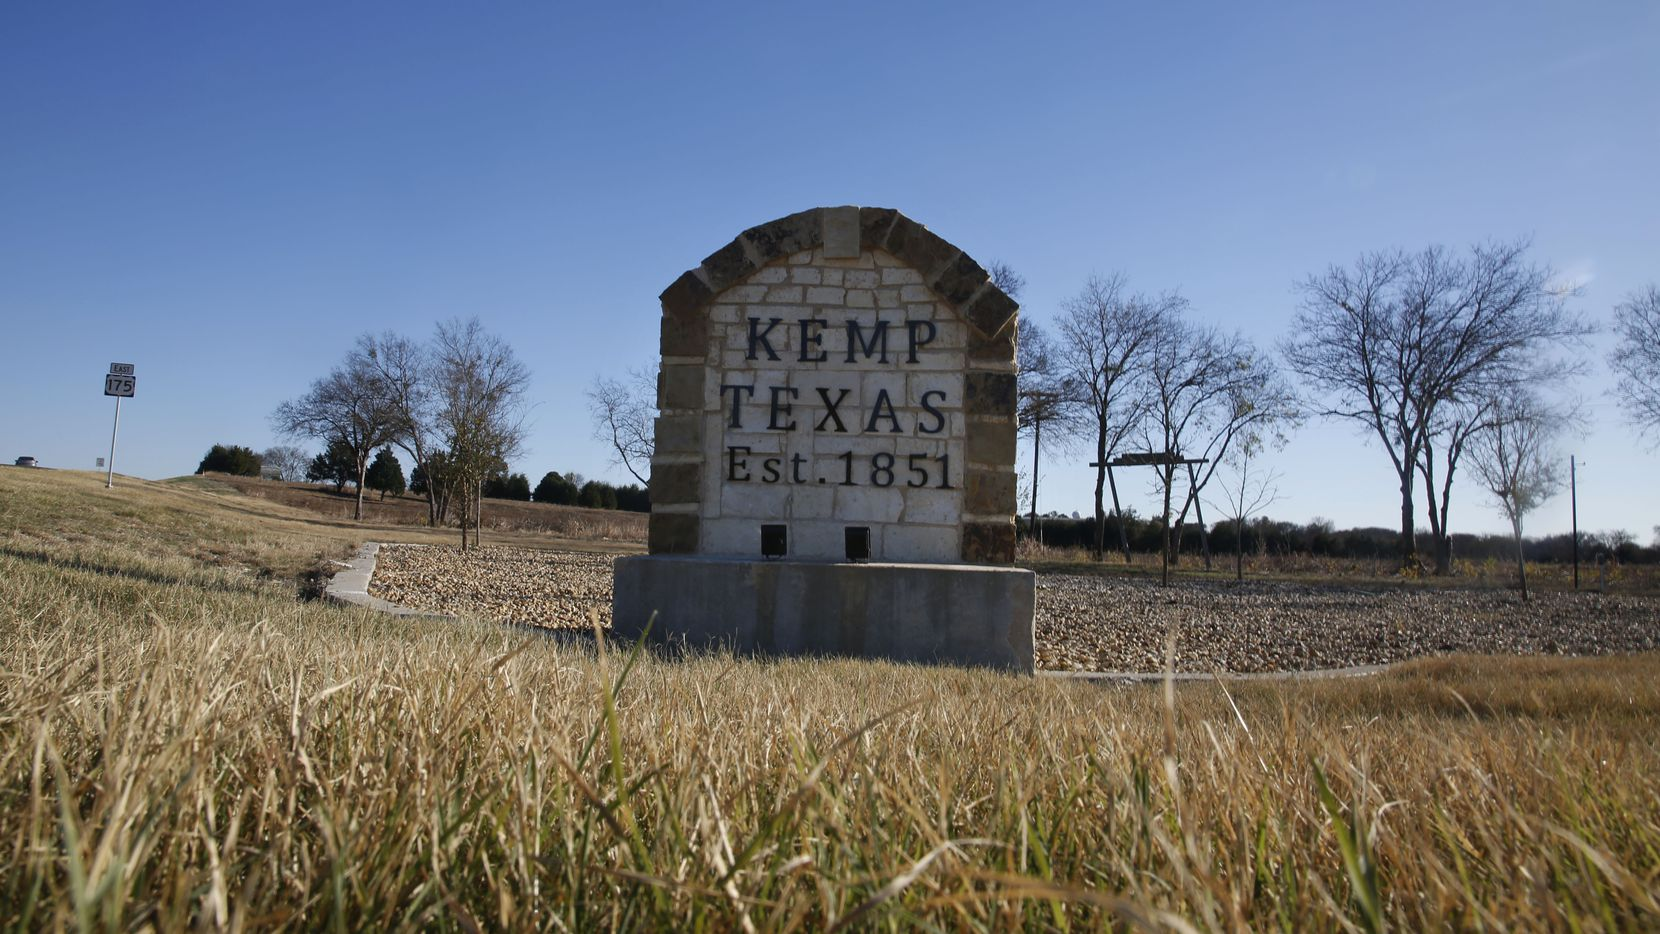 A stone marker stands at the exit from U.S. Highway 175 to Kemp, where a religious cabinetmaker was scammed by two men claiming to belong to the Illuminati.